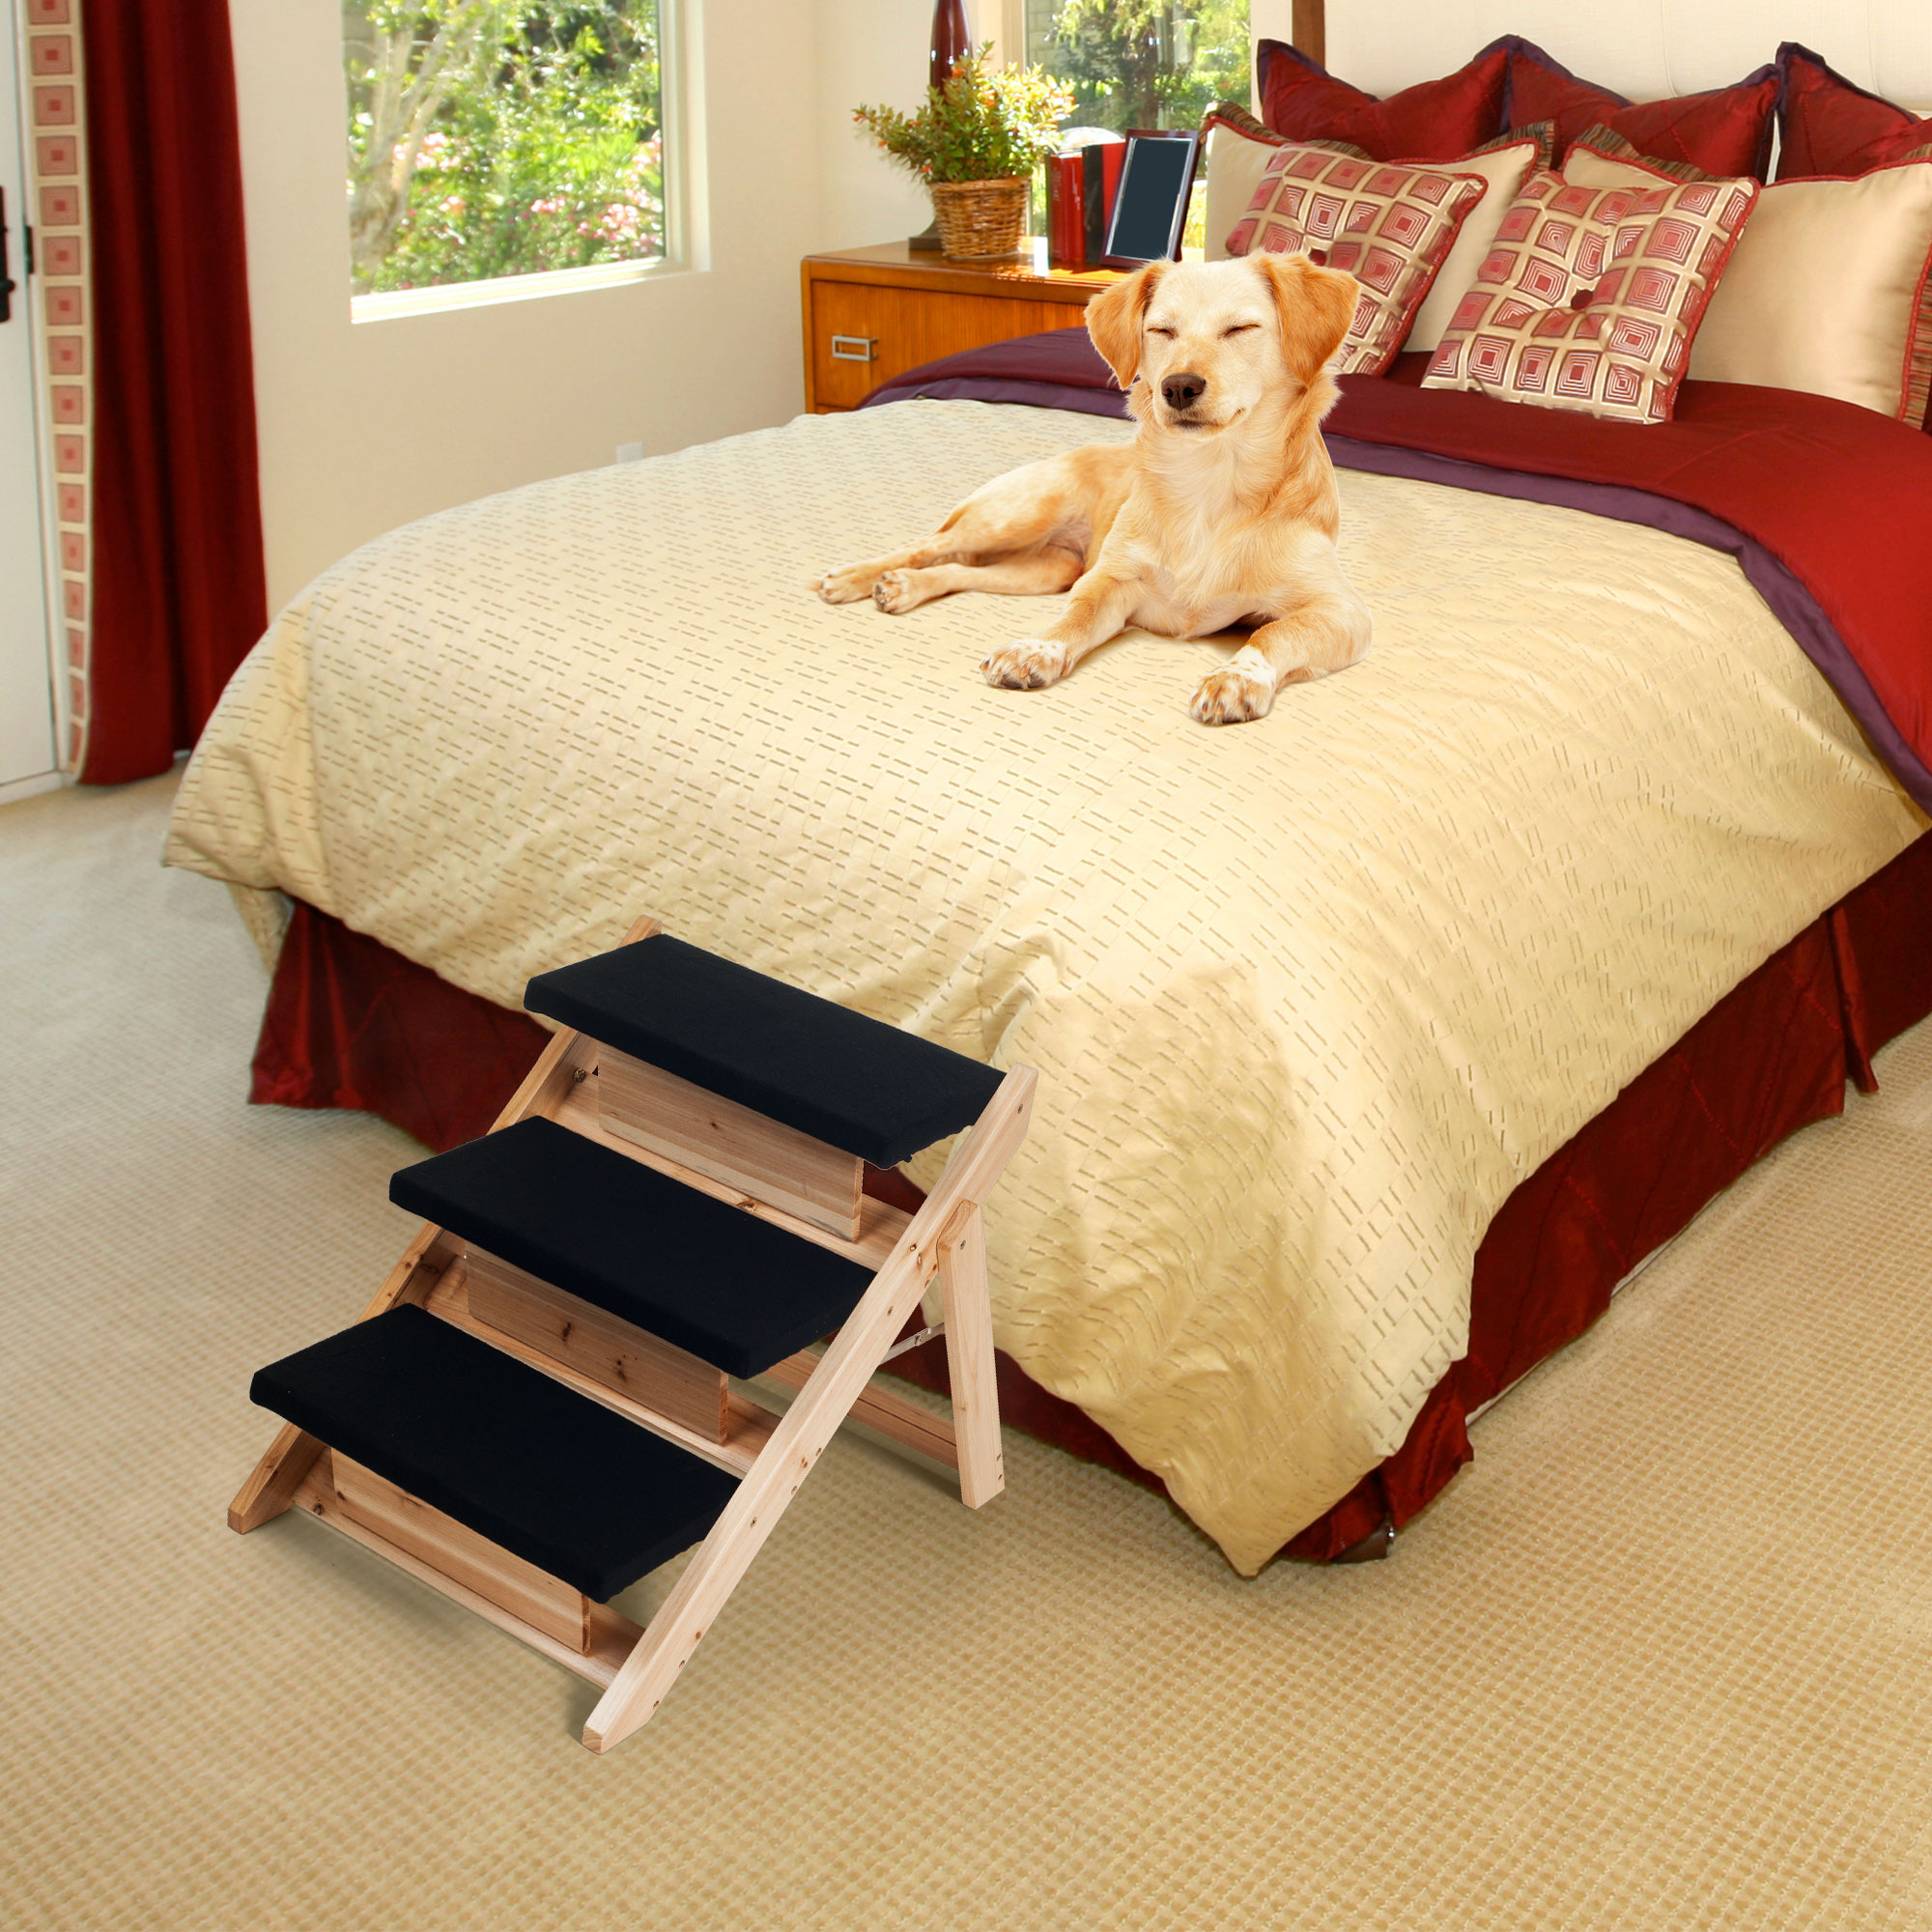 PAW Folding 2 In 1 Pet Ramp Amp Stairs For Dogs And Cats